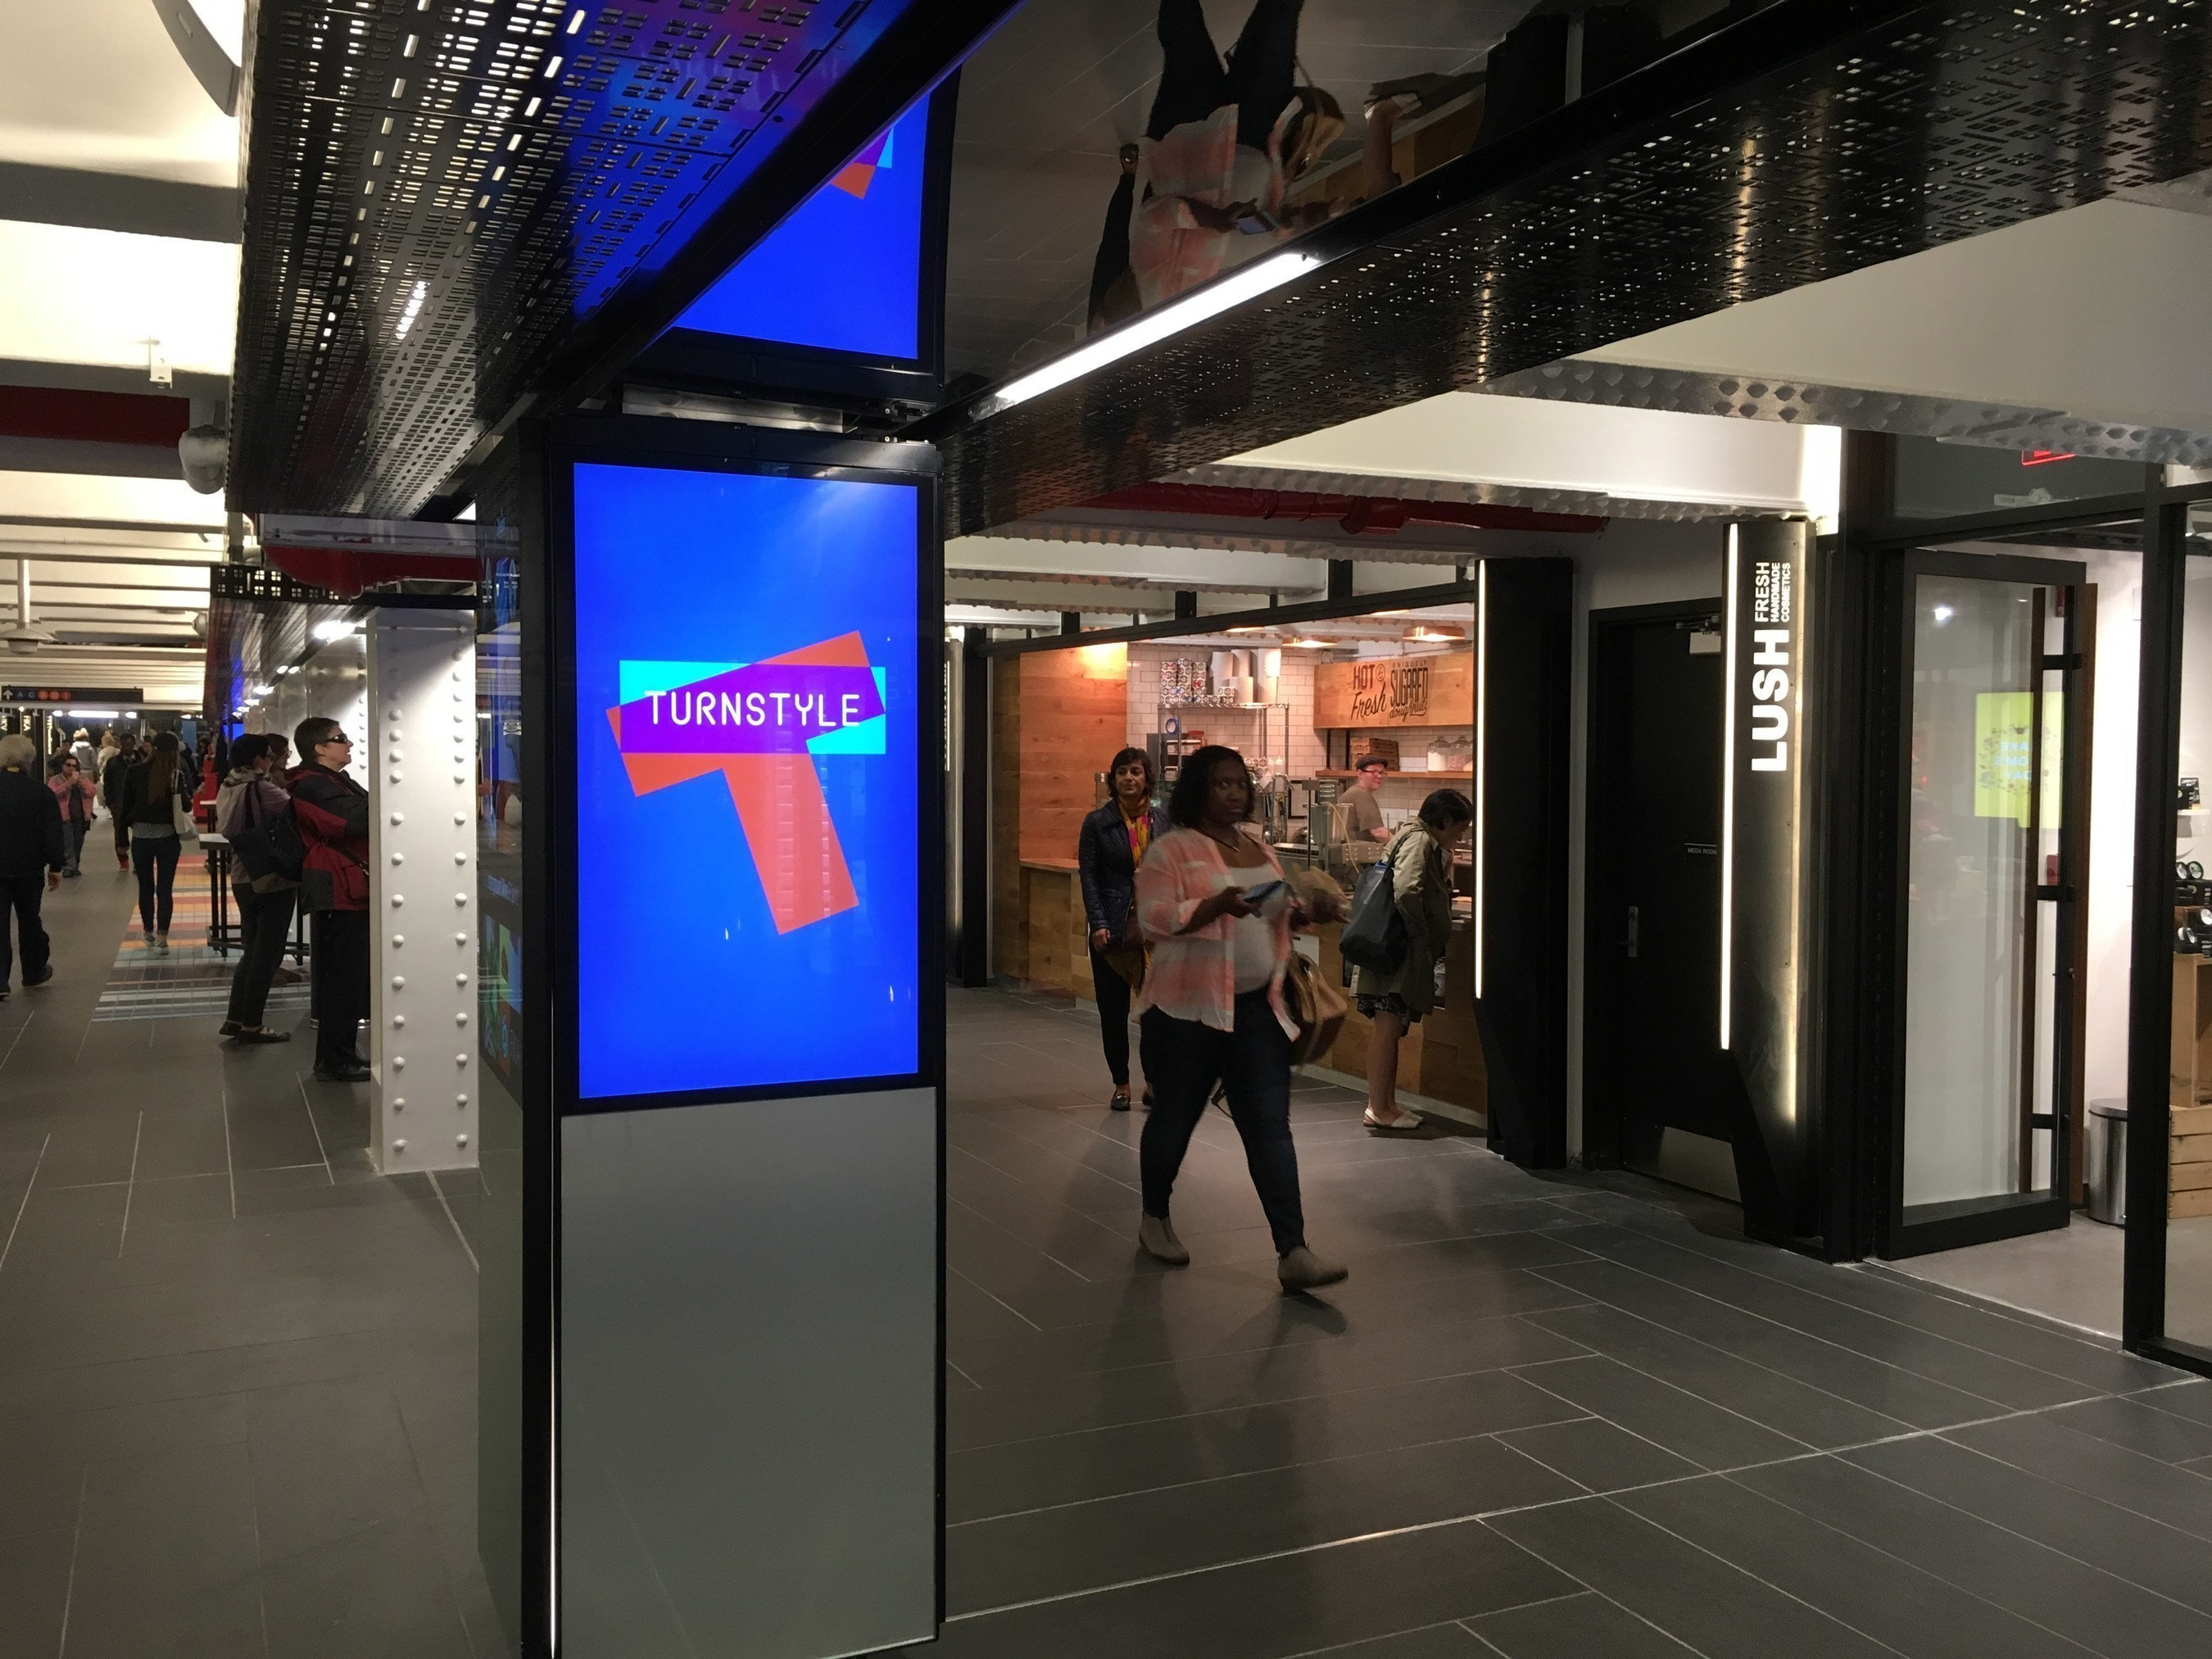 TurnStyle, a first of its kind underground marketplace inside the Columbus Circle 59th Street subway station, is now open, featuring 39 lively retail and food vendors. #TurnStyleNYC @TurnStyleNYC